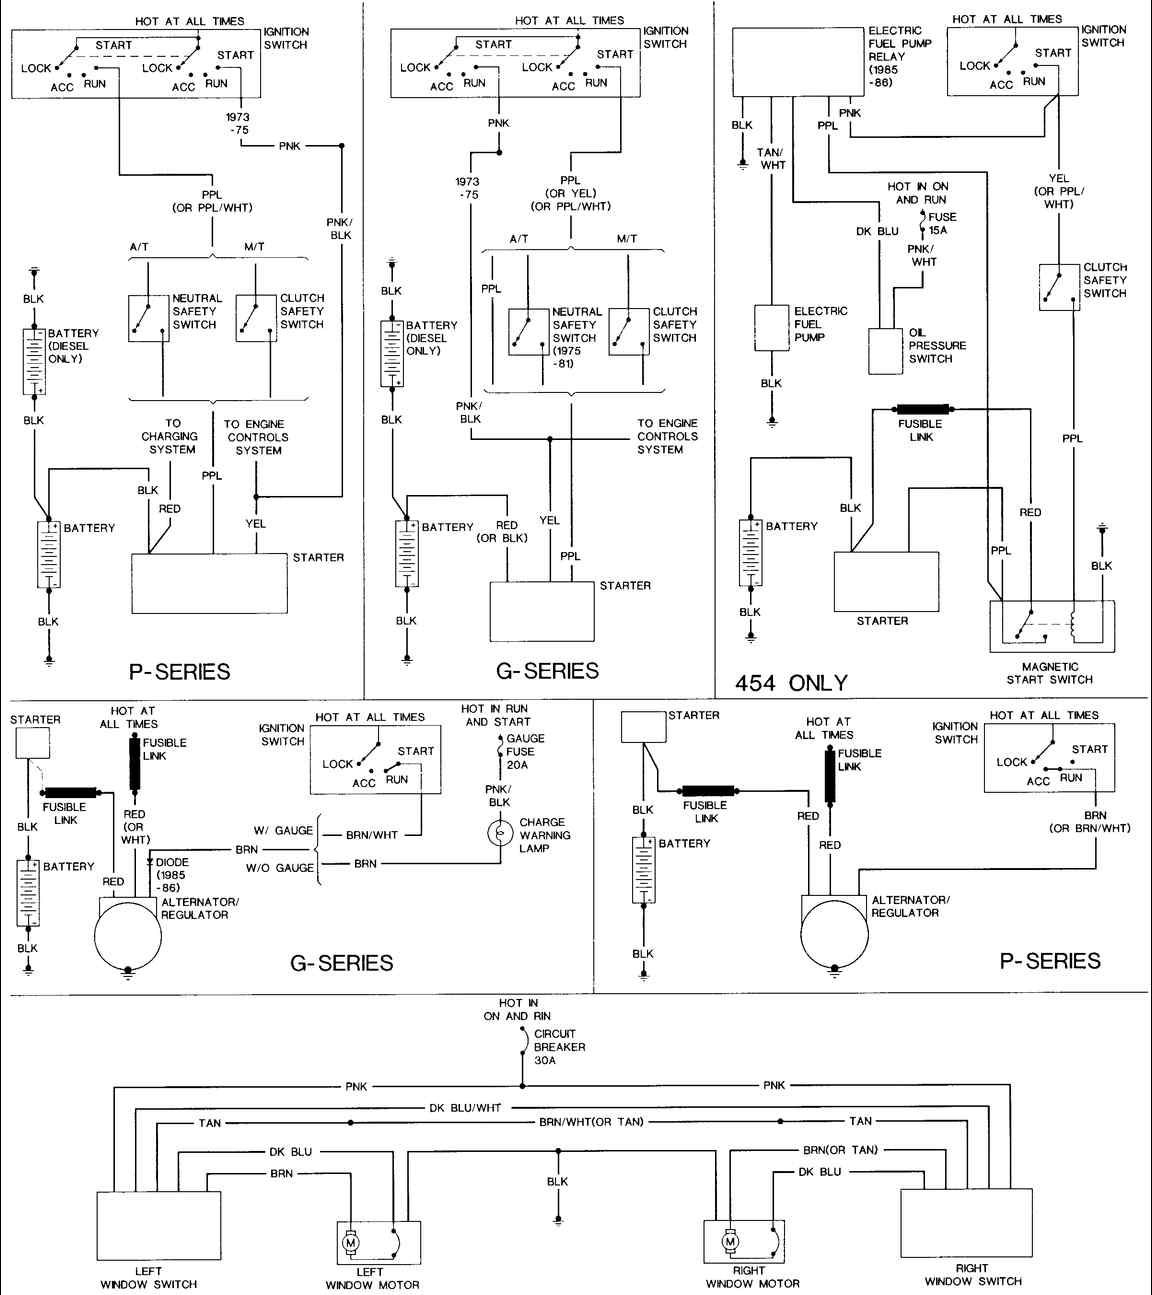 0c73623a181dc376dbb4777e2029d285 85 chevy truck wiring diagram 85 chevy van the steering column GM Ignition Switch Wiring Diagram at reclaimingppi.co